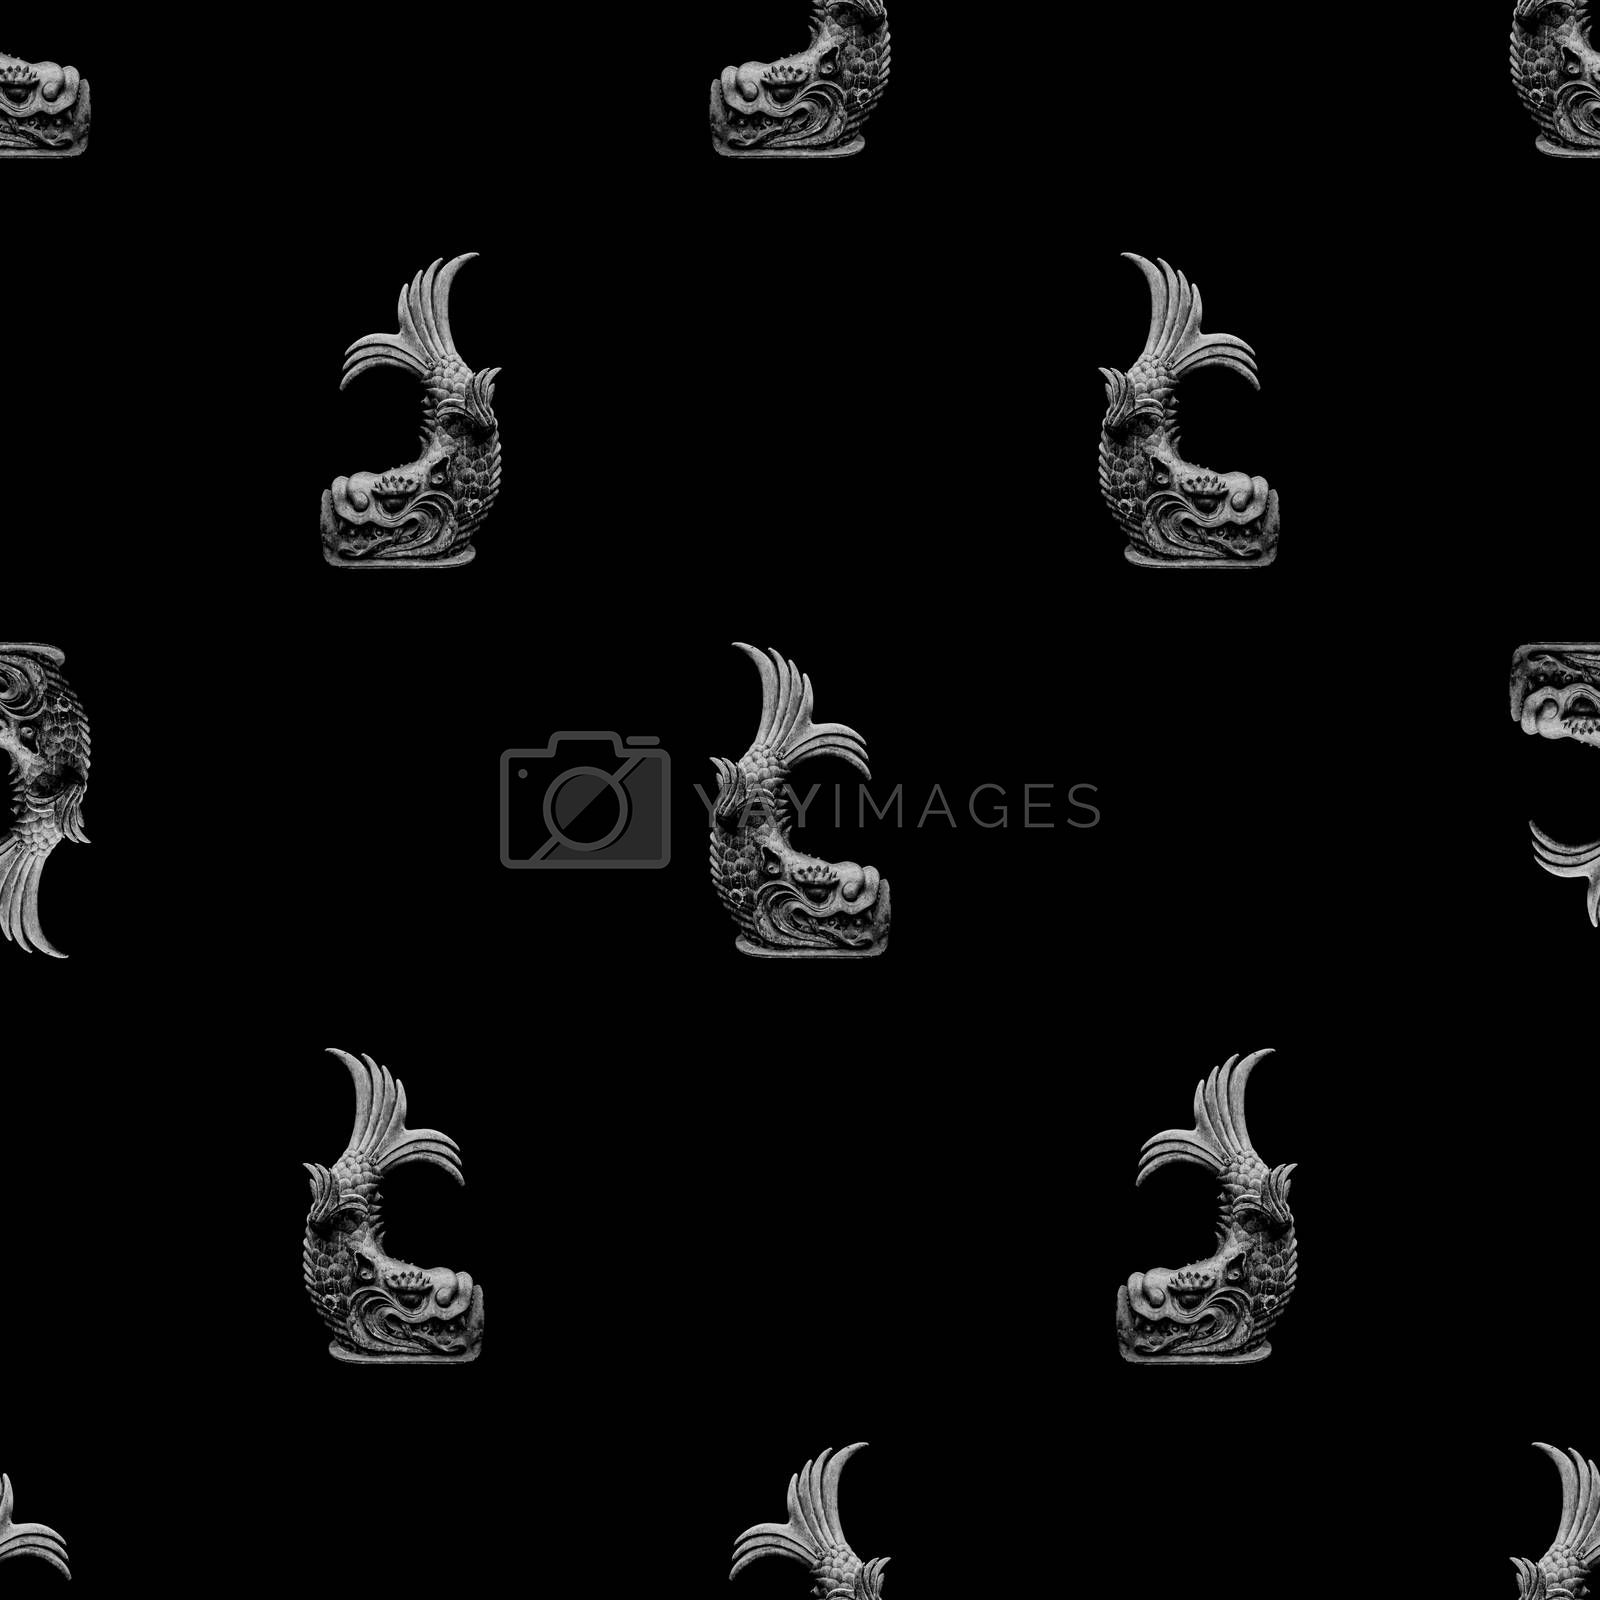 Conversational seamless pattern design mythological fish stone sculpture motif in black and white colors